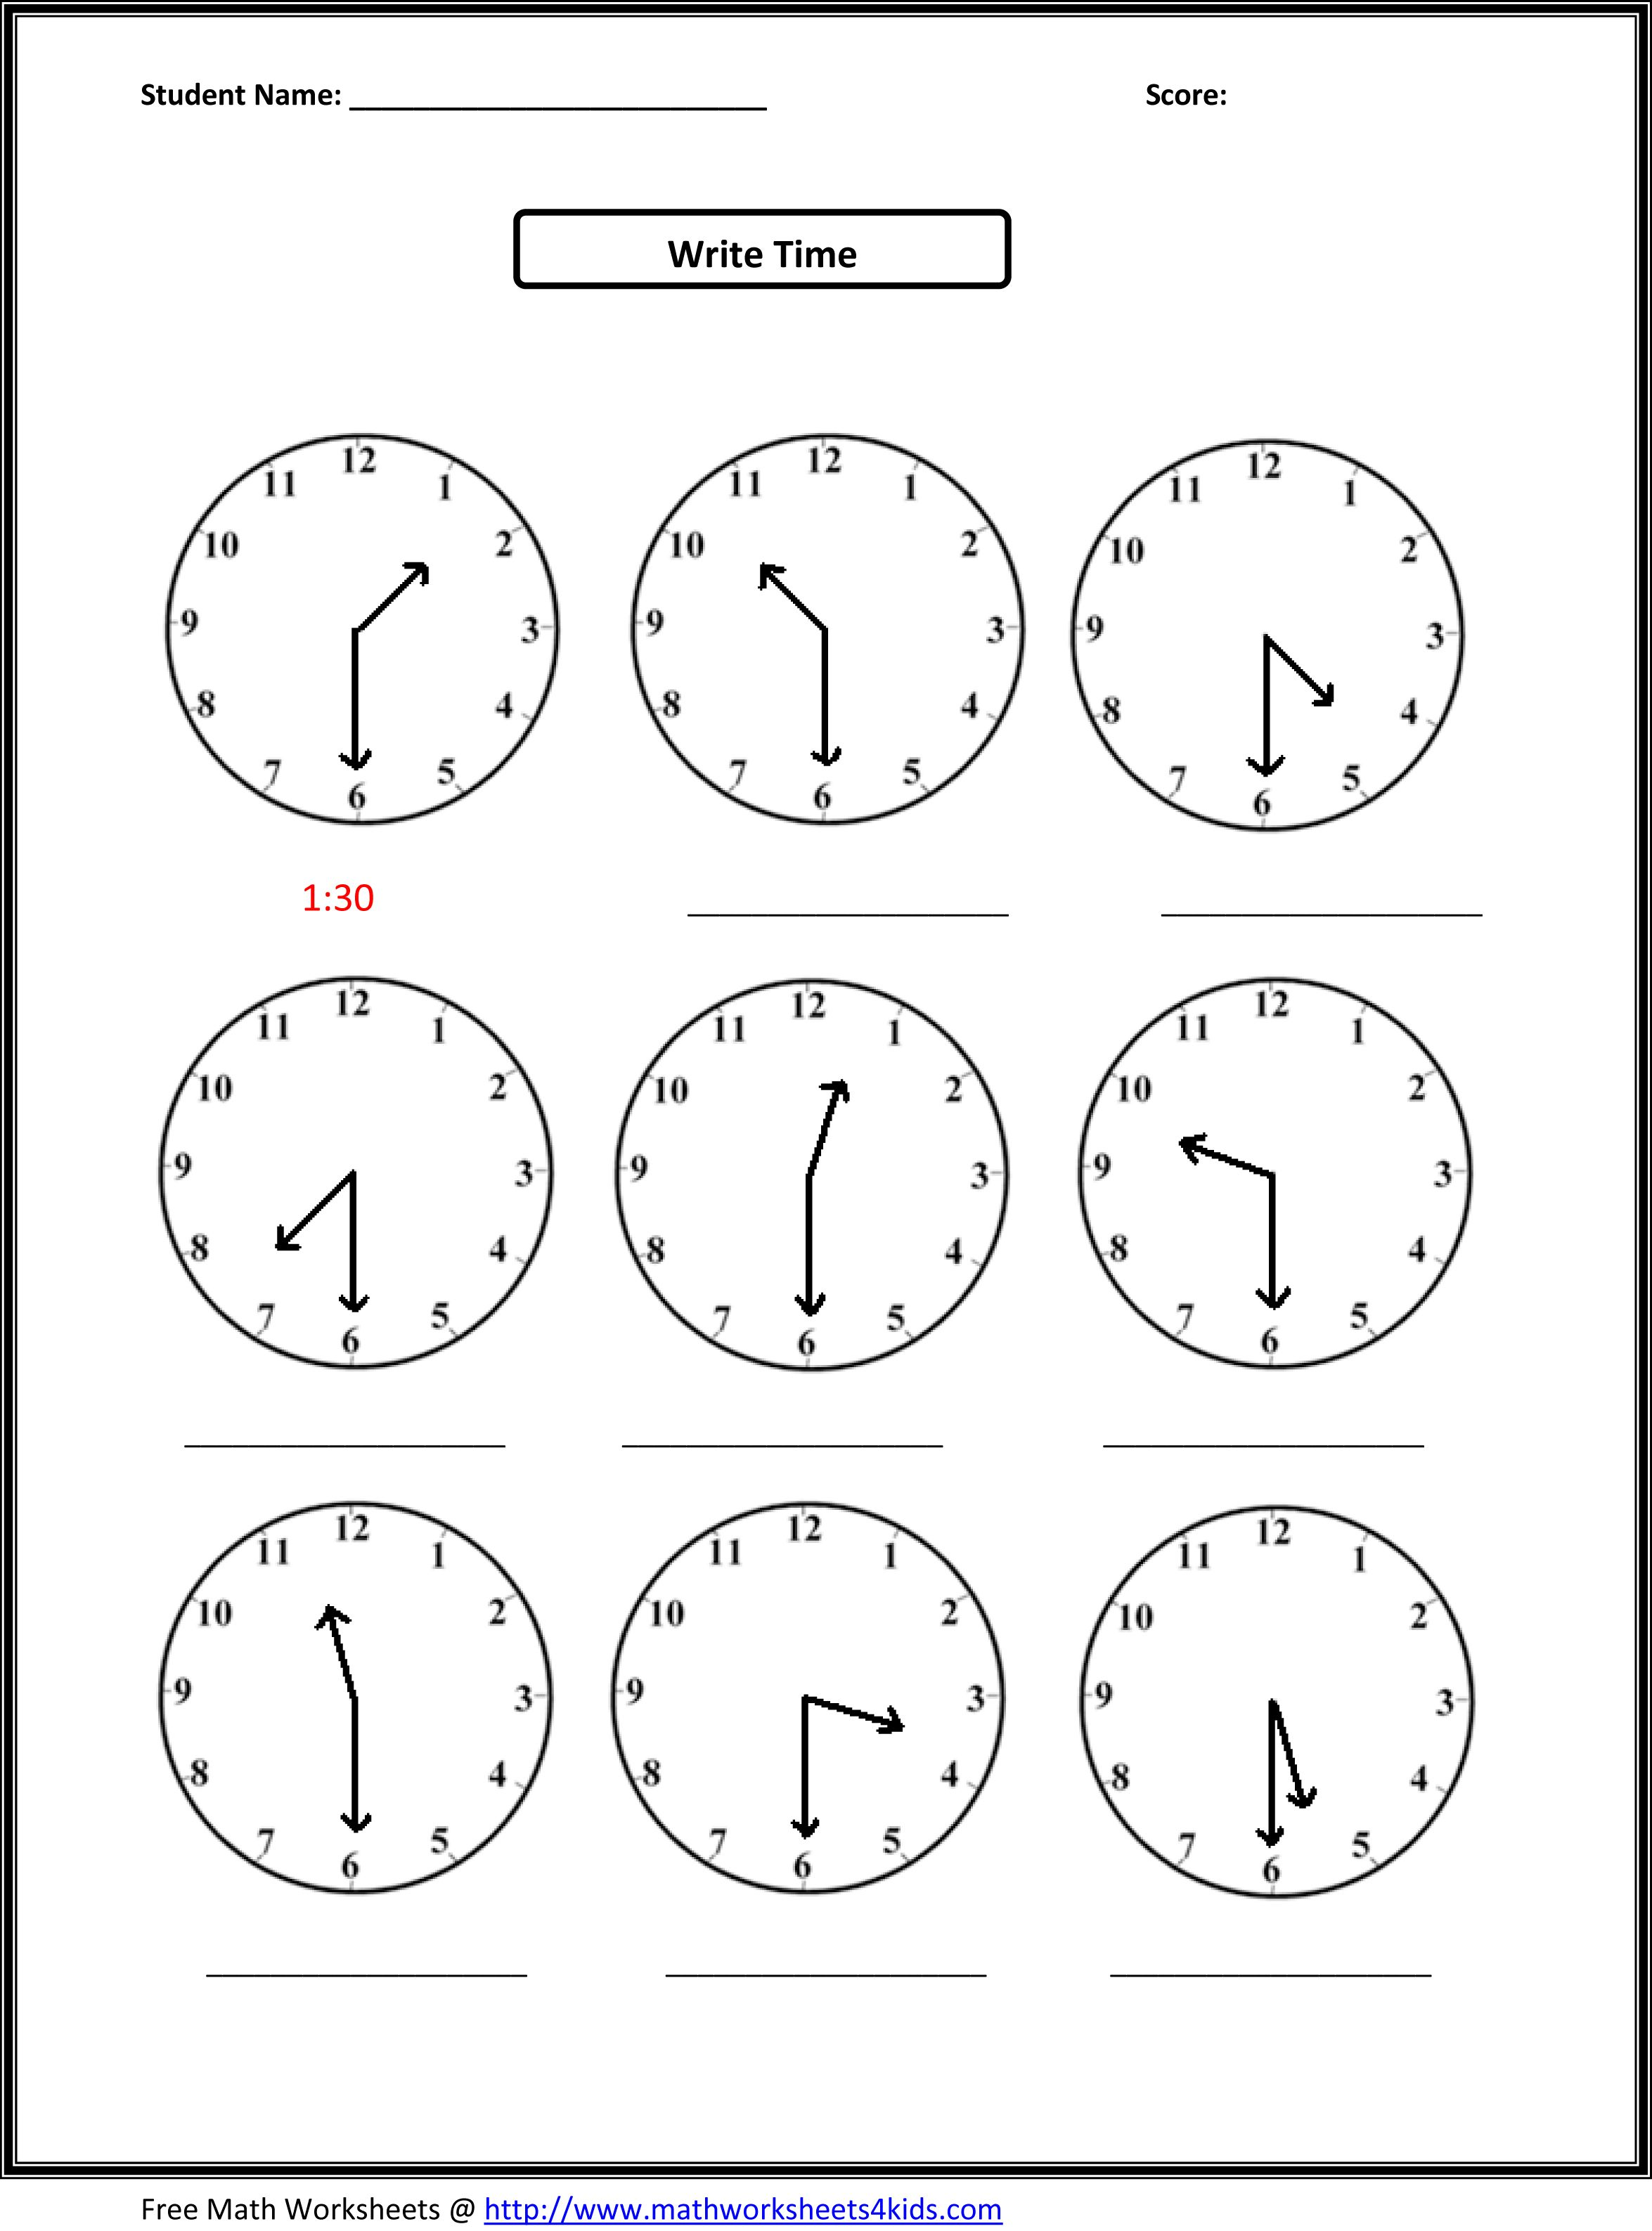 Weirdmailus  Winsome Worksheet On Time For Grade   Reocurent With Handsome Free Printable Telling Time Worksheets Nd Grade  Reocurent With Astonishing Time Concepts Worksheets Also Handwriting Worksheets Blank In Addition Proportion Equations Worksheet And Decimal Comparison Worksheet As Well As Printable High School Worksheets Additionally Story Element Worksheet From Reocurentcom With Weirdmailus  Handsome Worksheet On Time For Grade   Reocurent With Astonishing Free Printable Telling Time Worksheets Nd Grade  Reocurent And Winsome Time Concepts Worksheets Also Handwriting Worksheets Blank In Addition Proportion Equations Worksheet From Reocurentcom